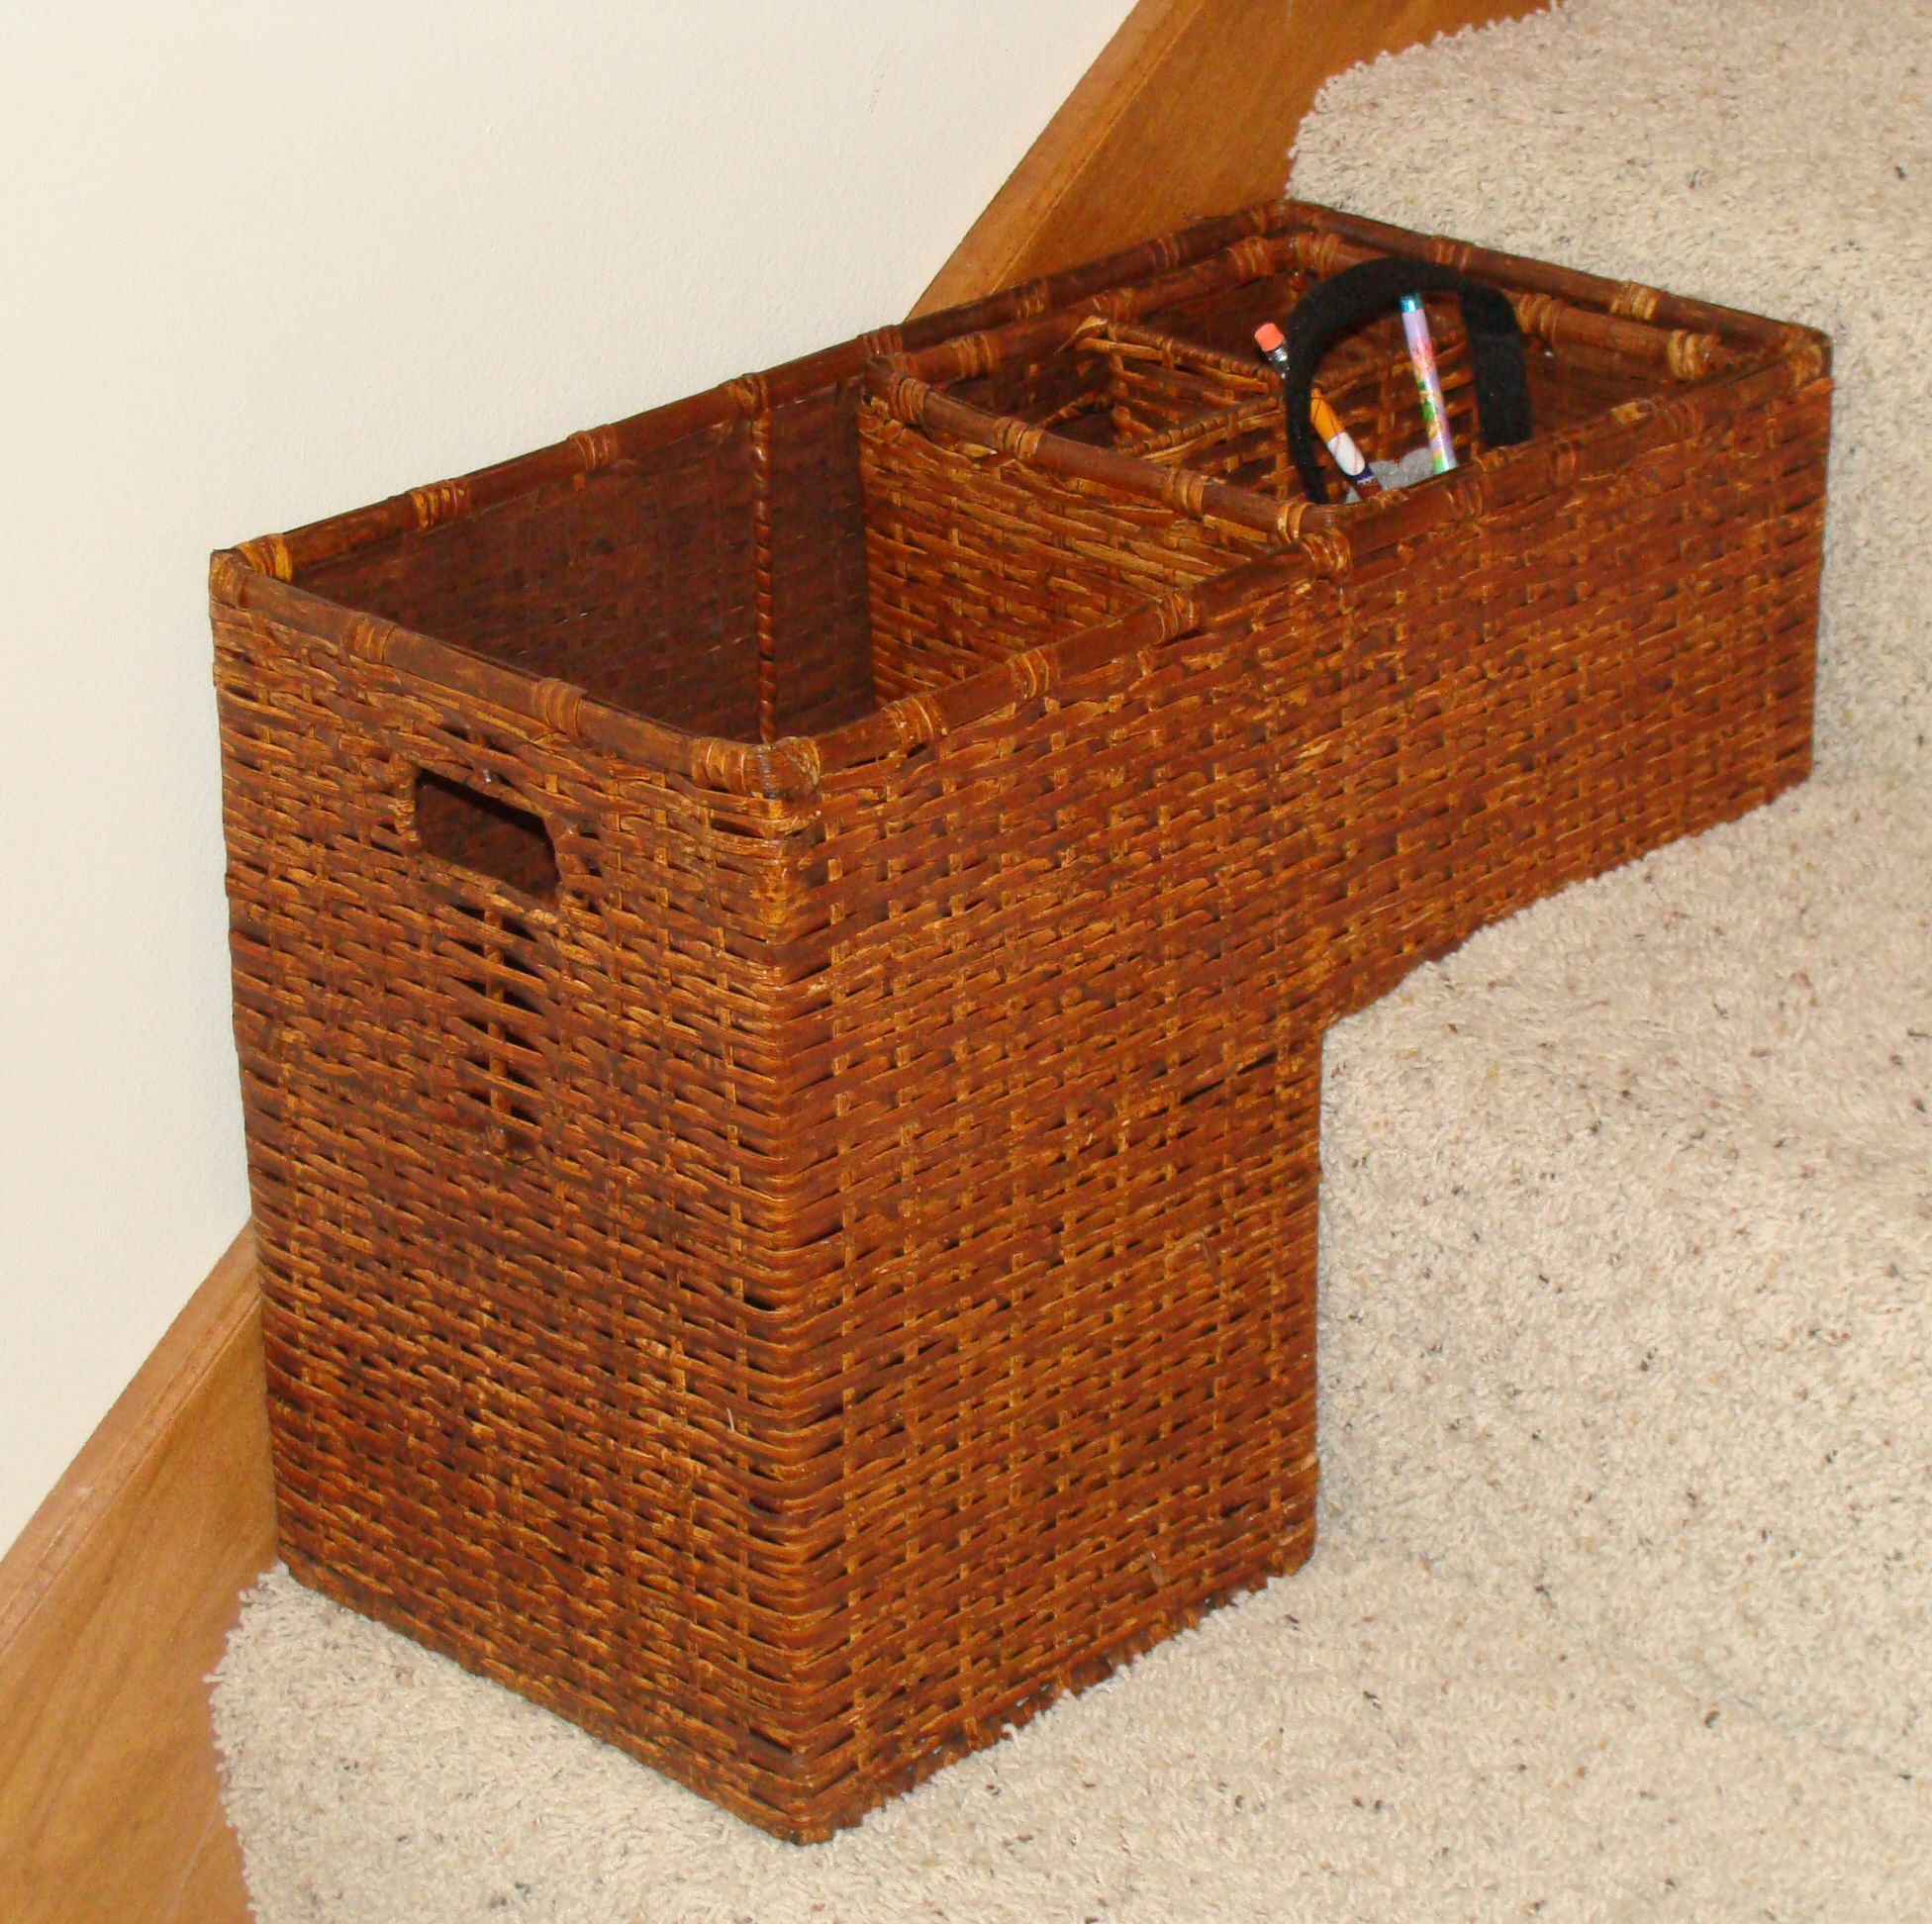 Basket For Stairs Simple Touch Beautiful Steps HomesFeed